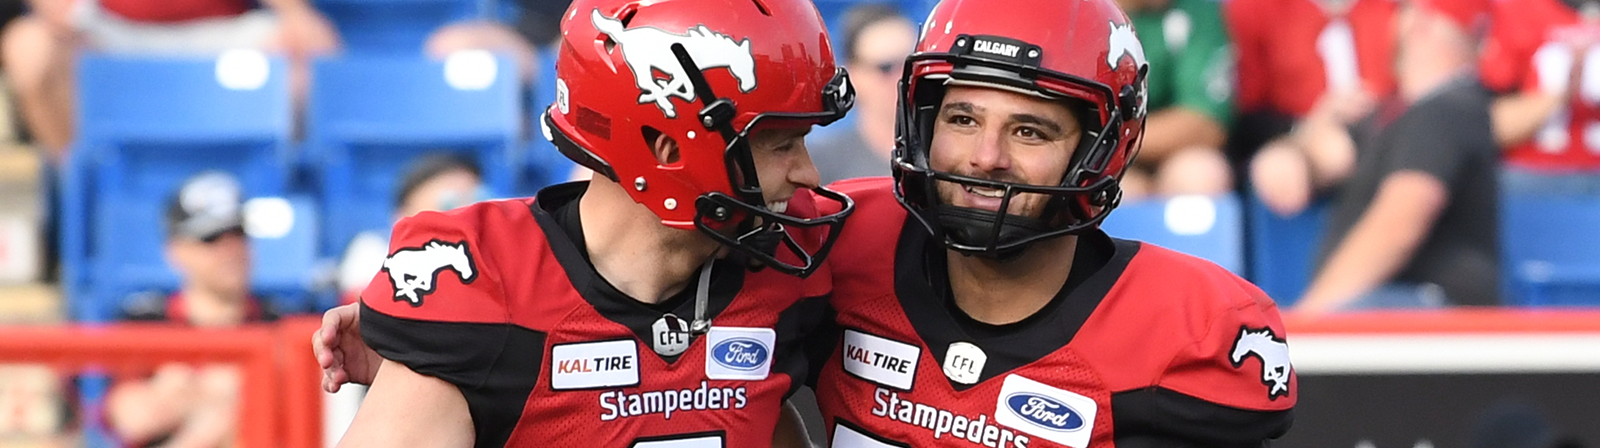 TOGETHER, THEY WERE SOMETHING GREATER - Calgary Stampeders